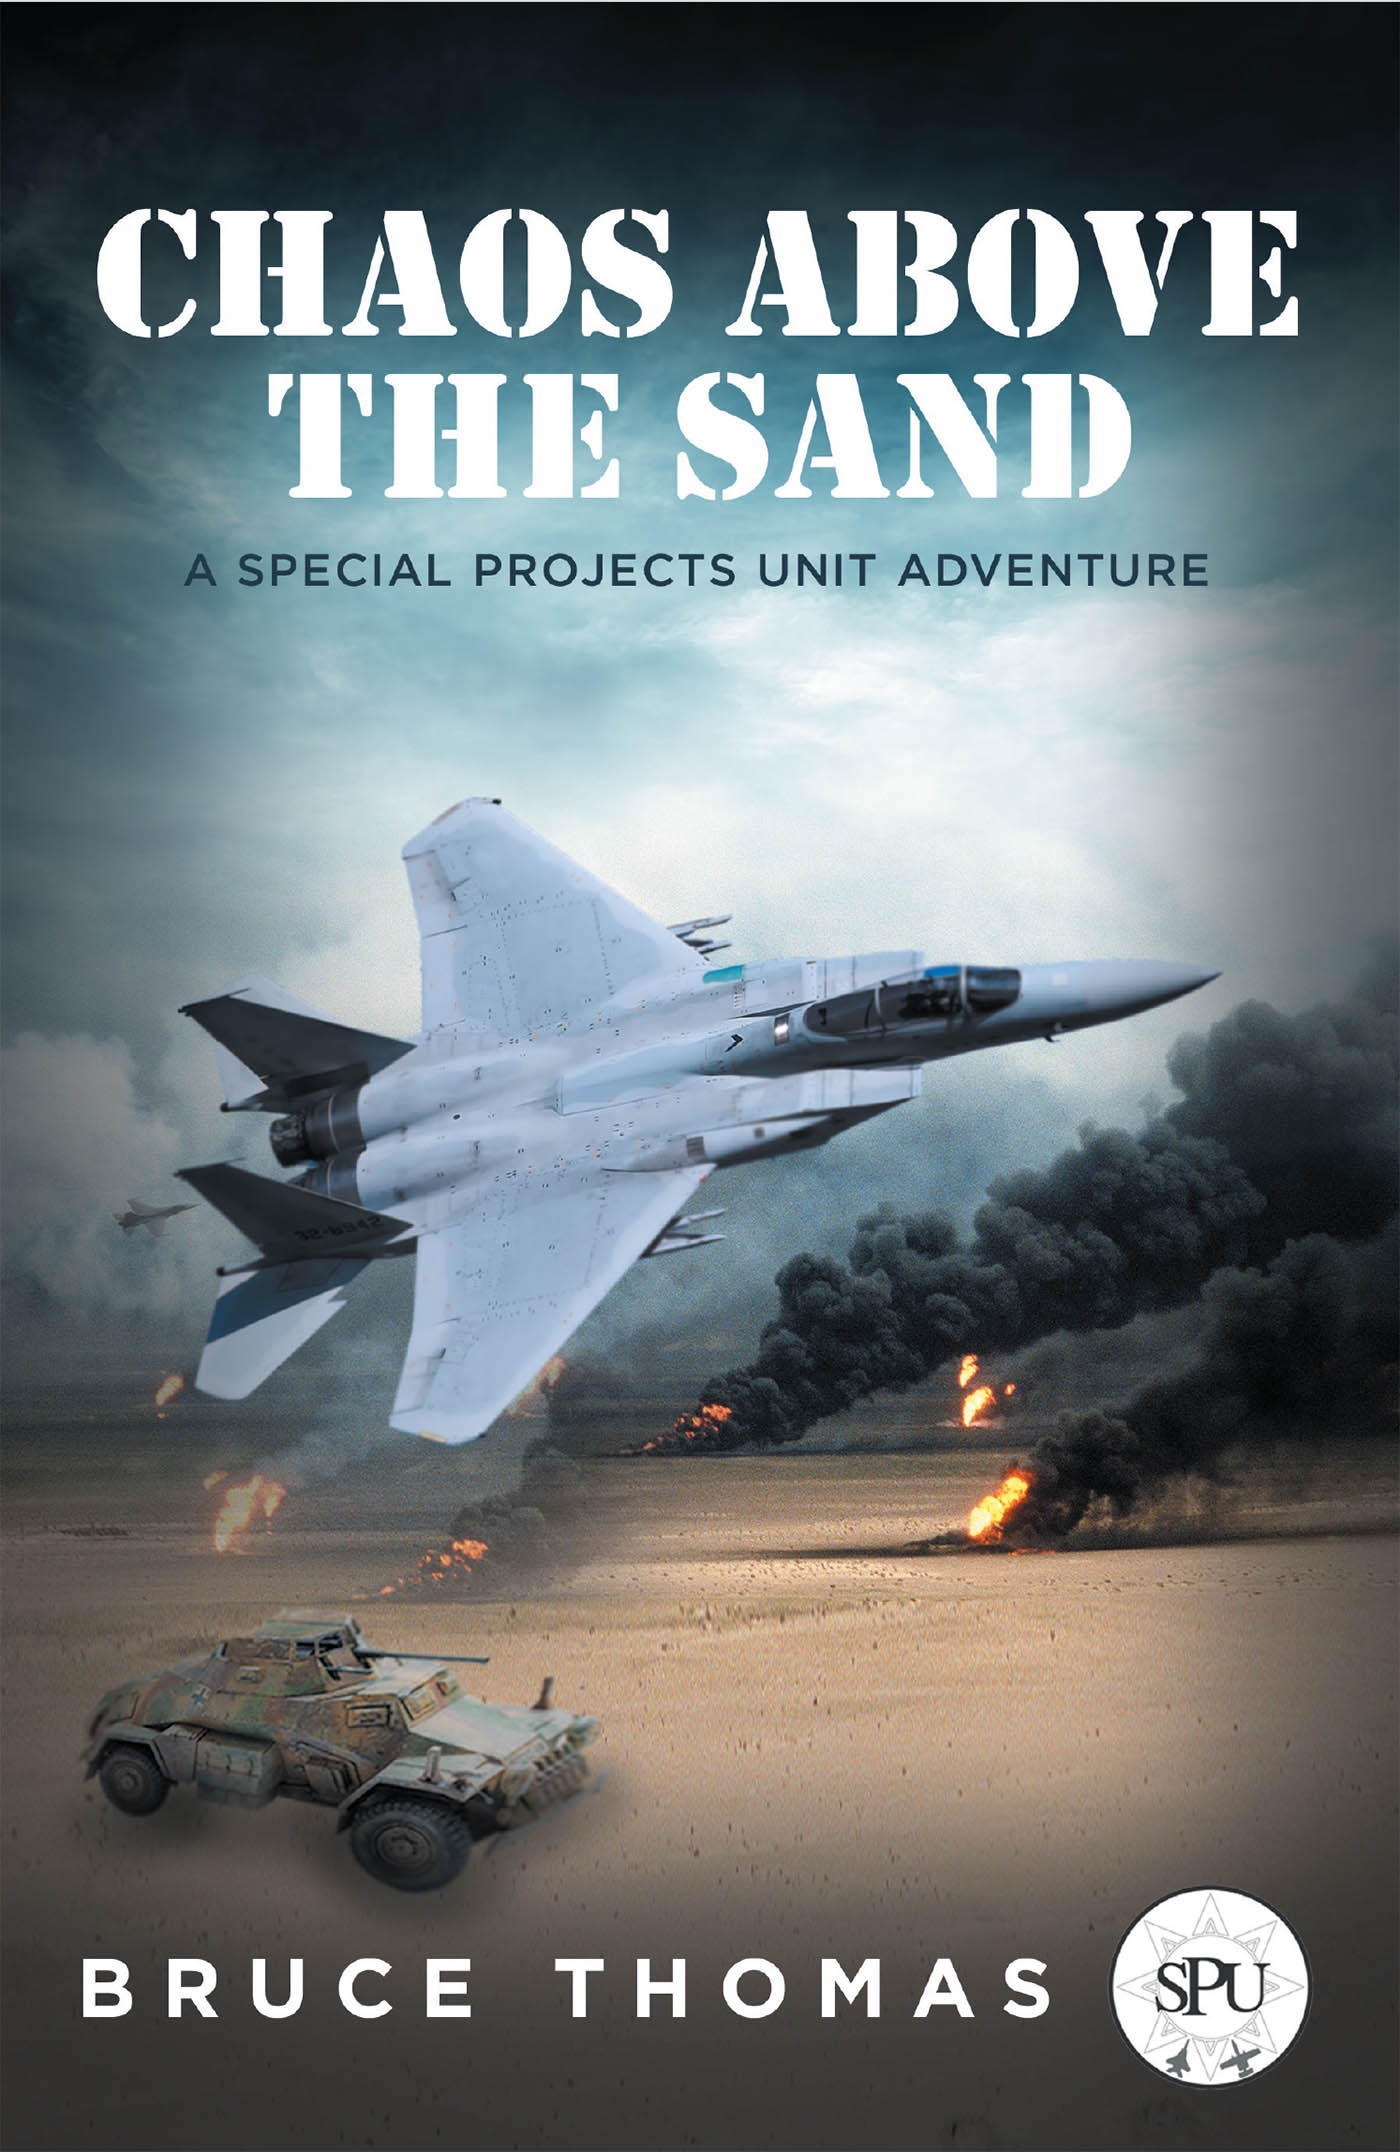 Bruce Thomas's New Book 'Chaos Above the Sand' Brings an Action-Packed Story About Stopping Iran's Plans of Seizing the Entire Middle East